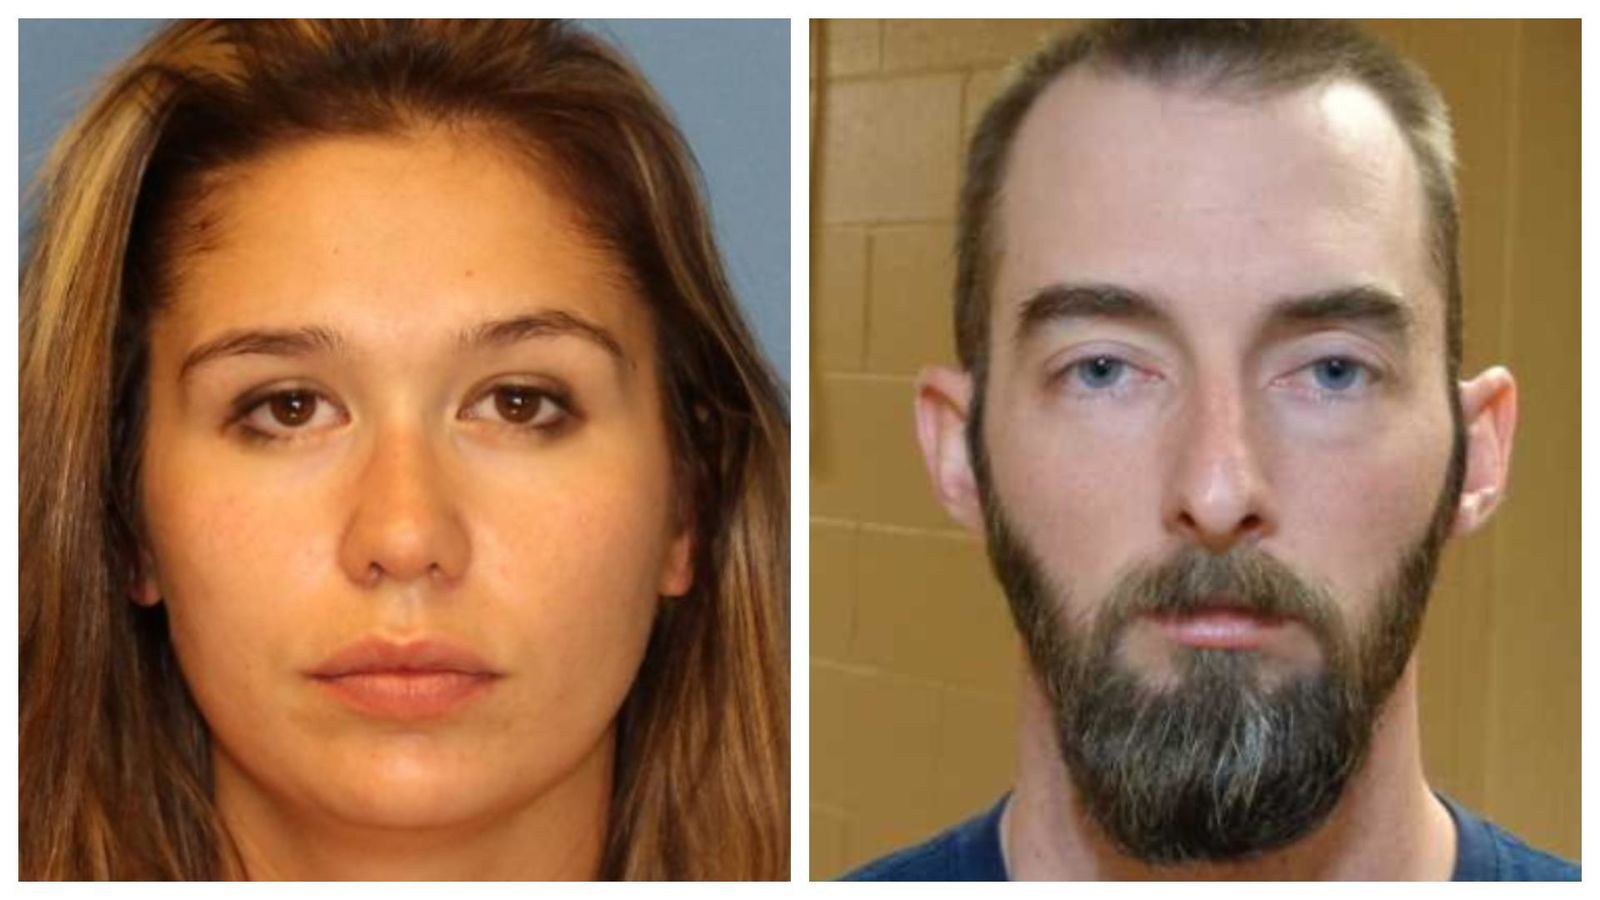 Charlene Childers and Tim Dean (Photo: Wayne County Sheriff's Office).